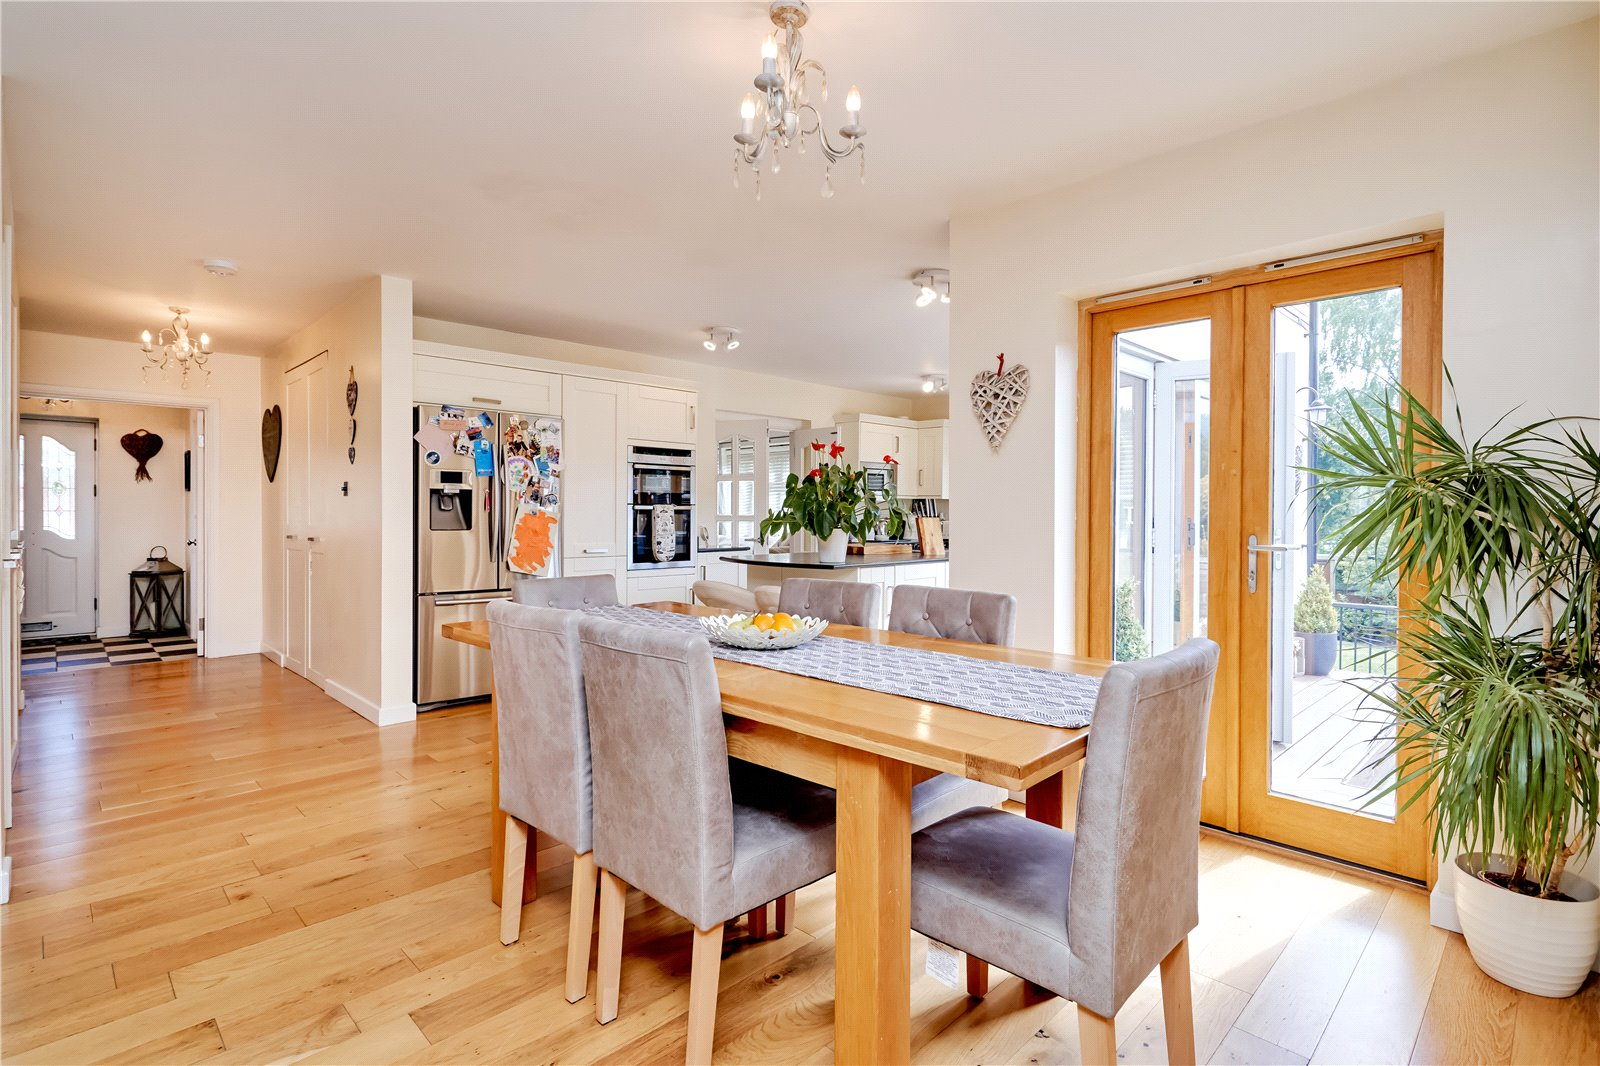 4 bed house for sale in Welwyn, AL6 0QG 10